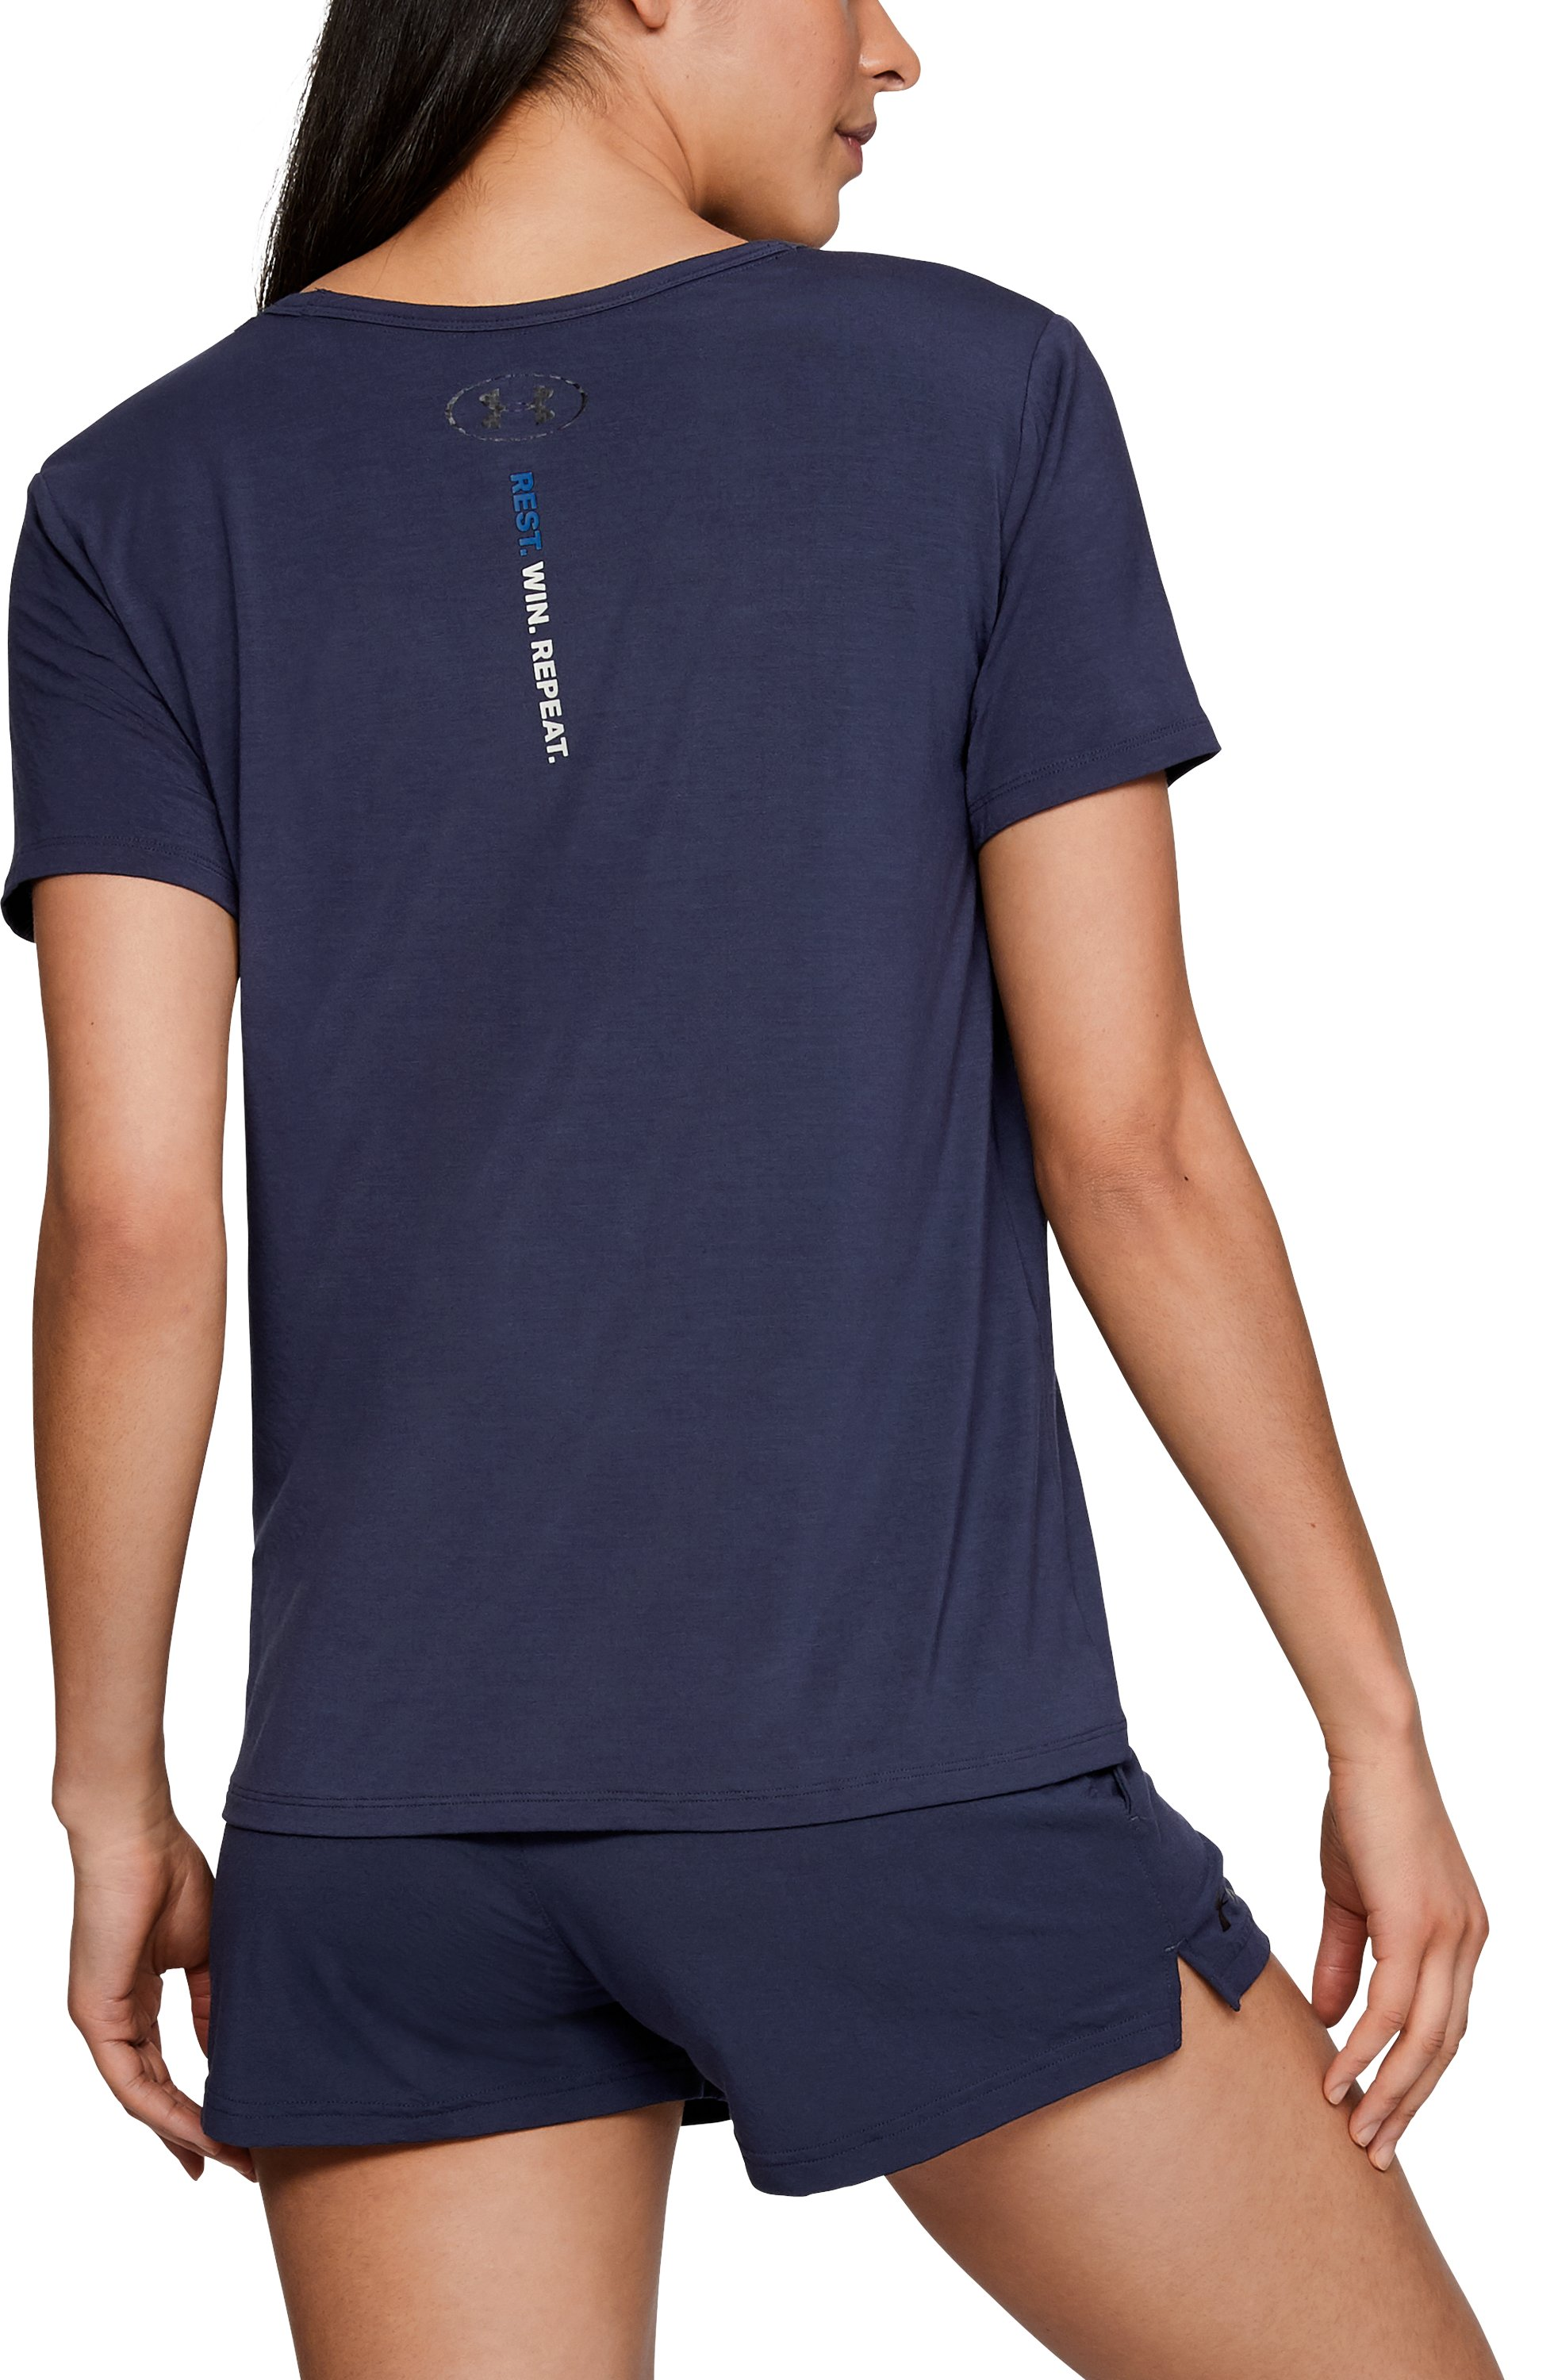 Women's Athlete Recovery Ultra Comfort Sleepwear PEACE Graphic T-Shirt, Midnight Navy,